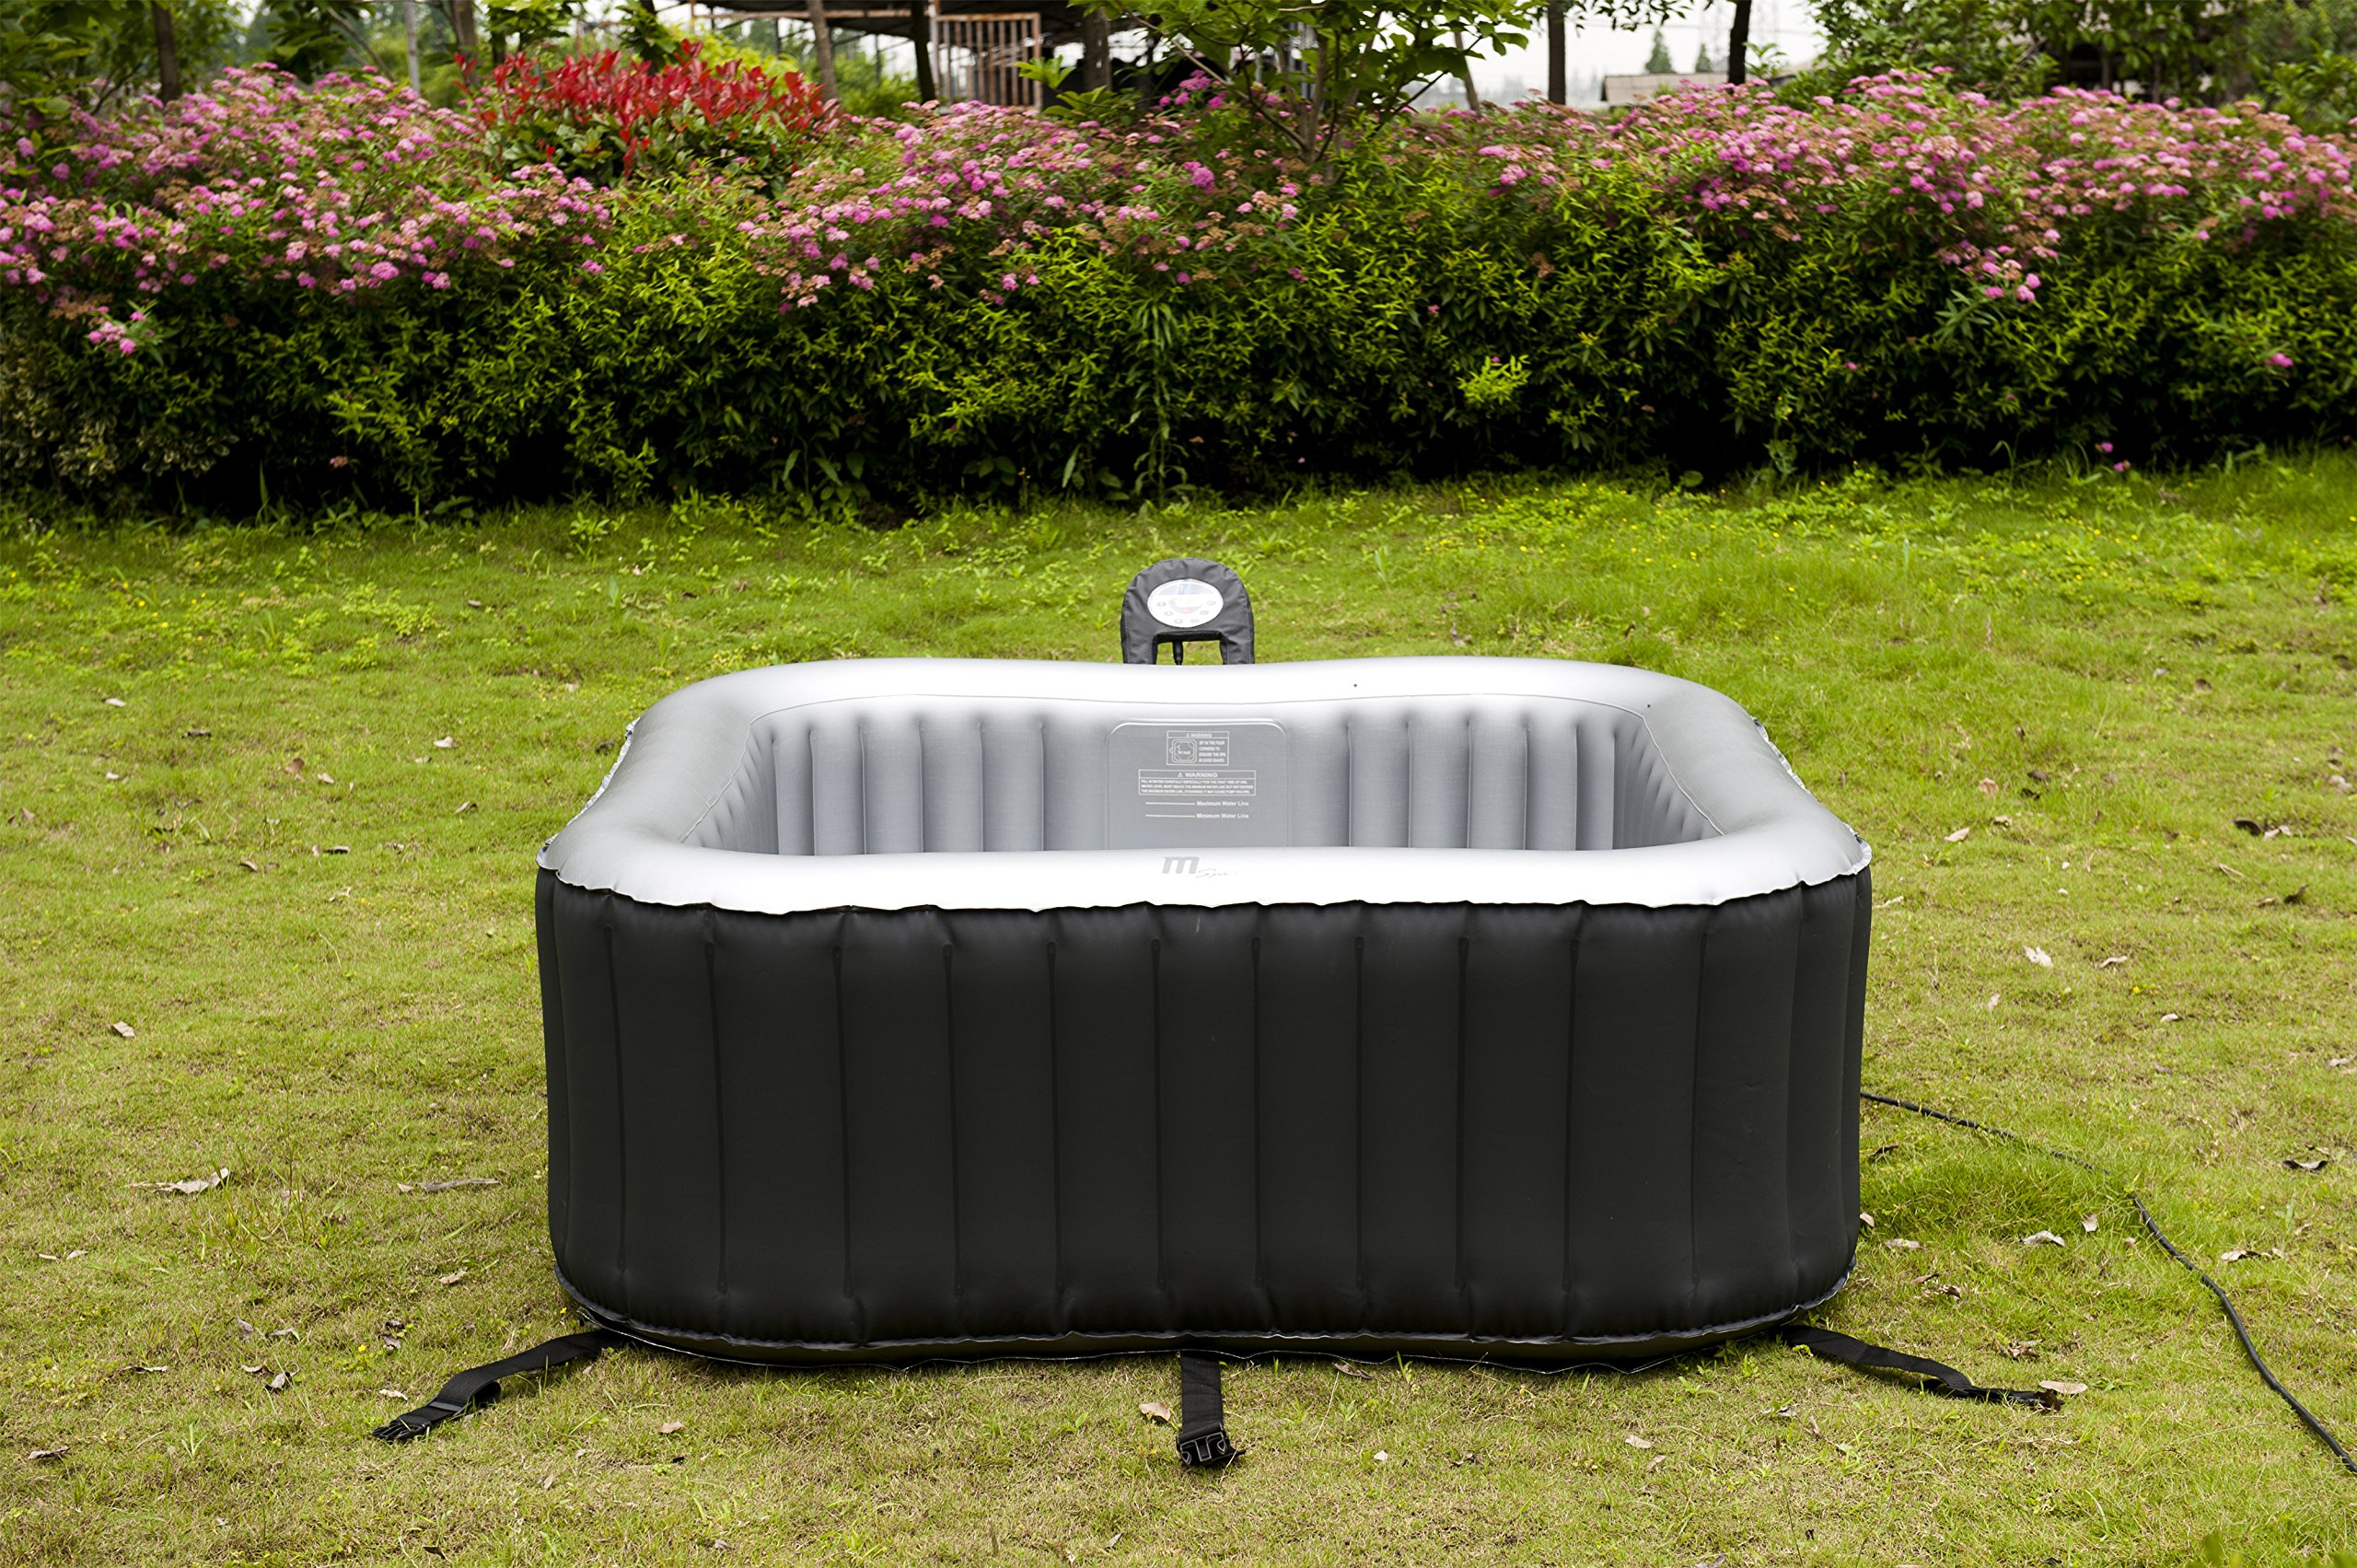 MSPA Lite Alpine Square Relaxation and Hydrotherapy Outdoor Spa M-009LS by M-SPA (Image #7)